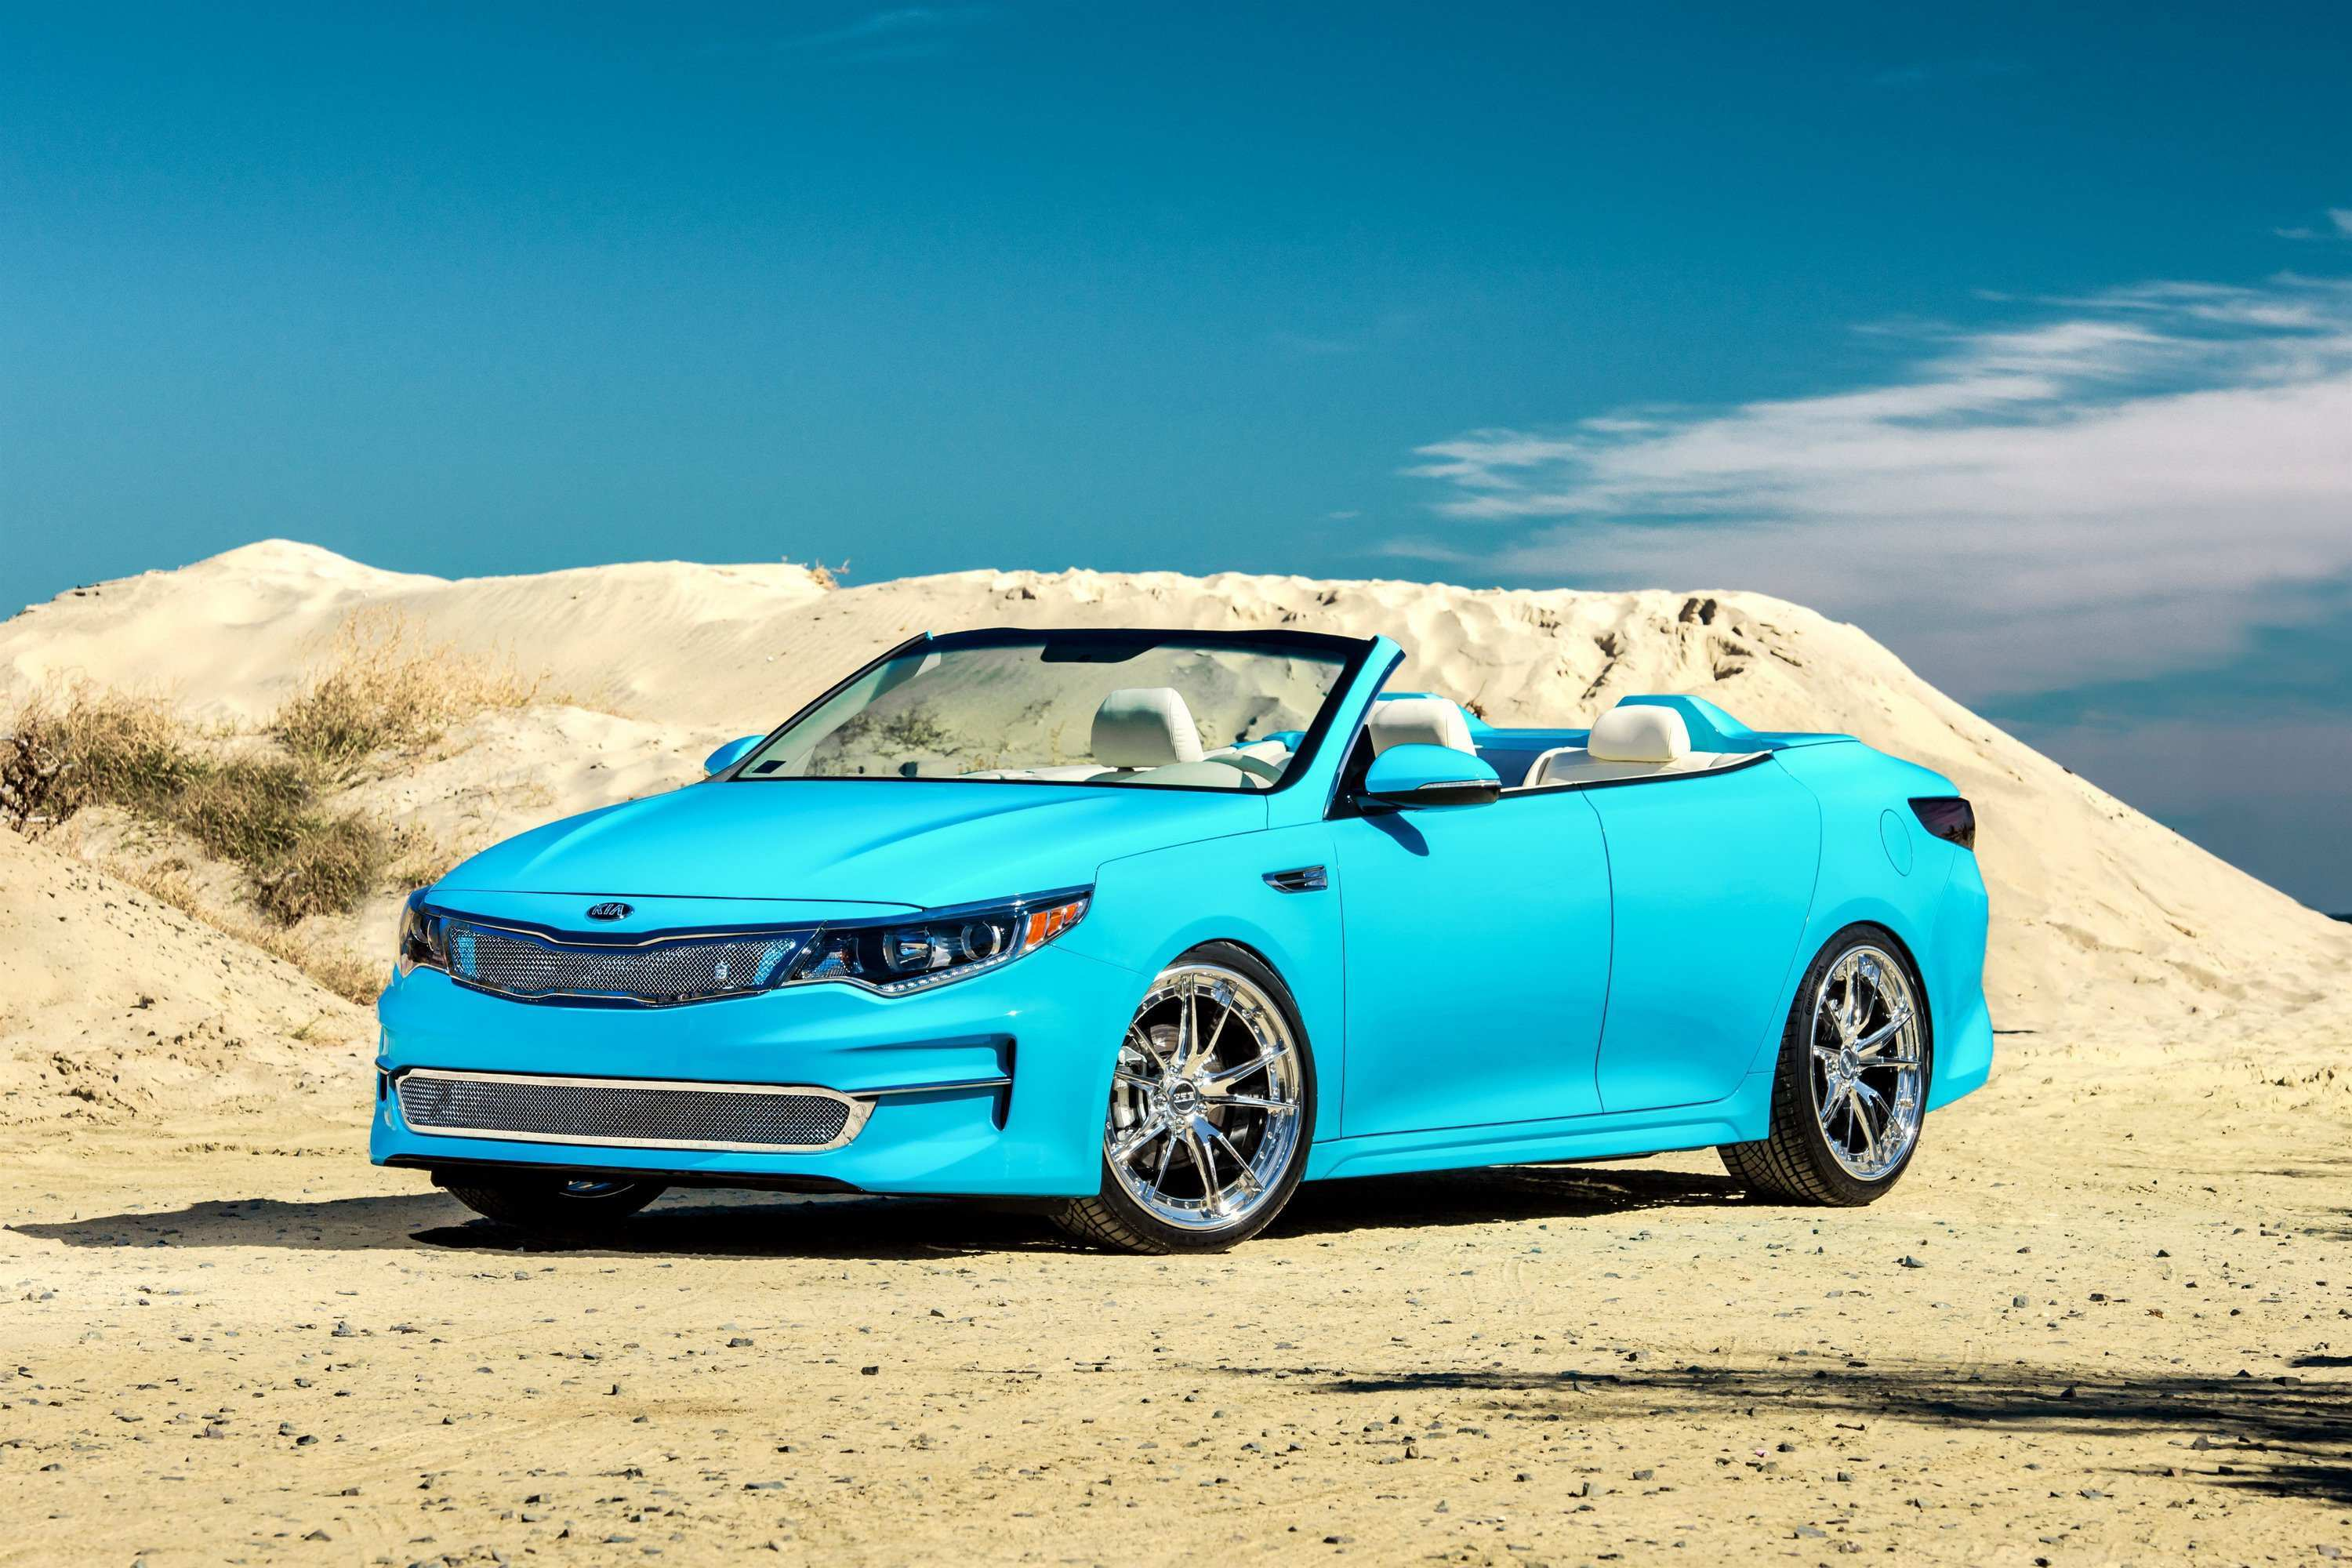 40 Great 2020 Kia OptimaConcept New Review by 2020 Kia OptimaConcept